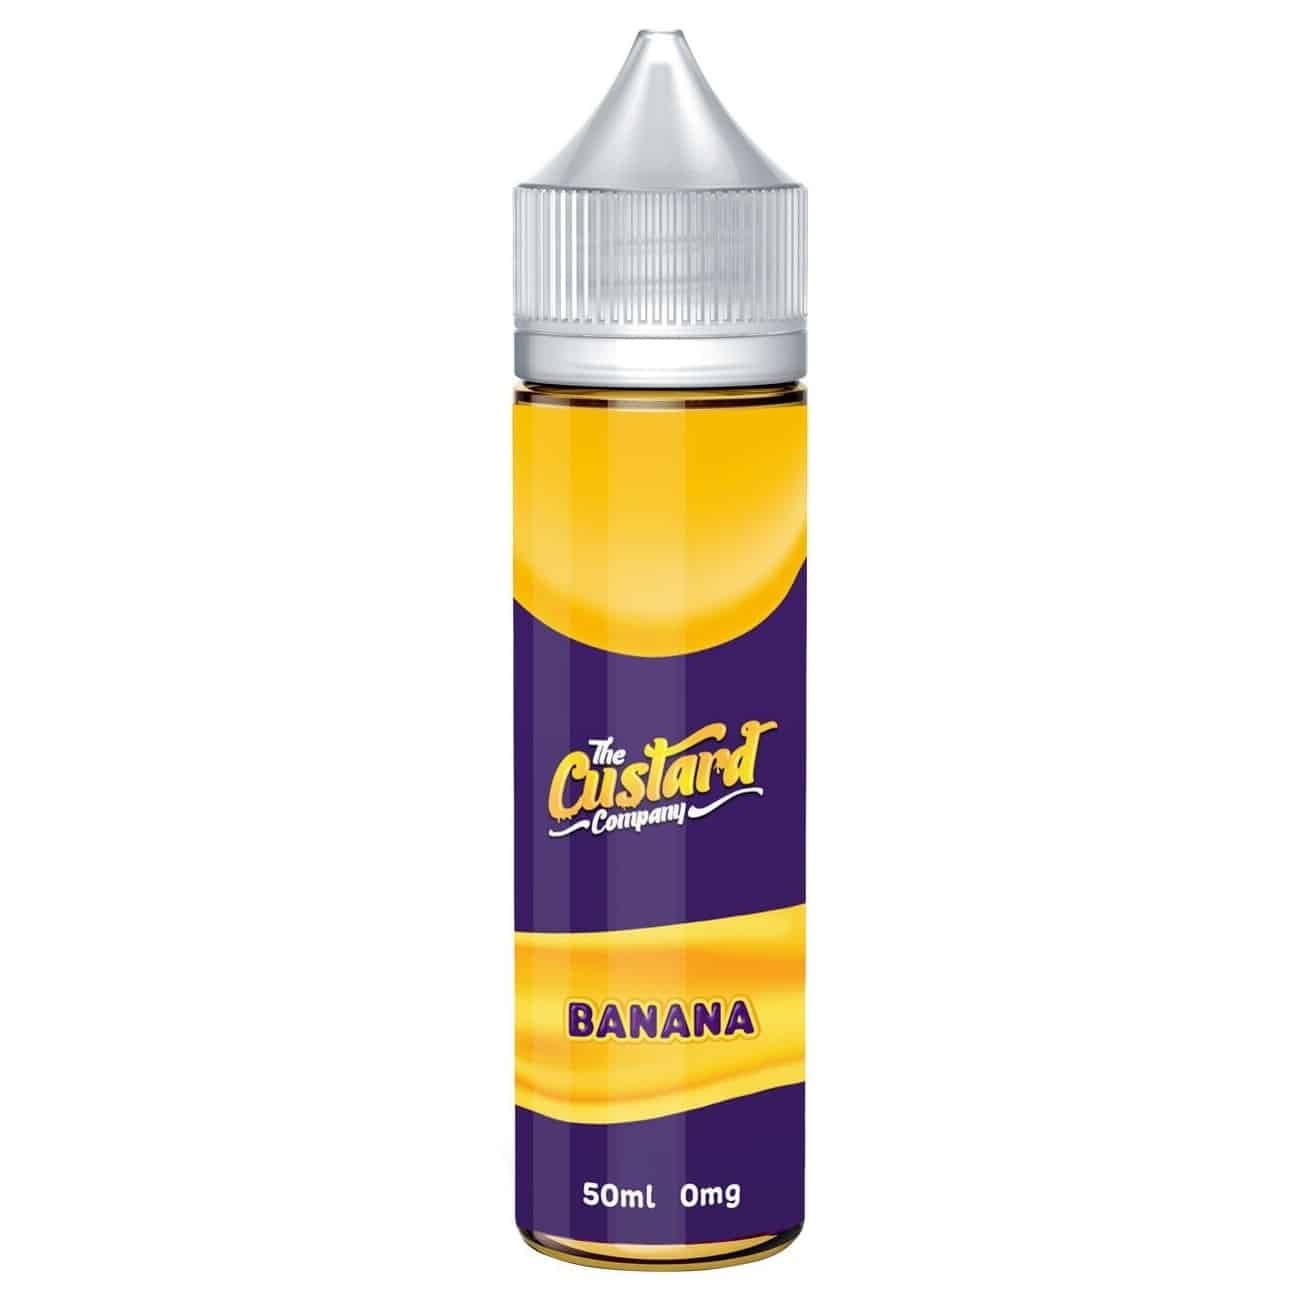 The Custard Company Banana